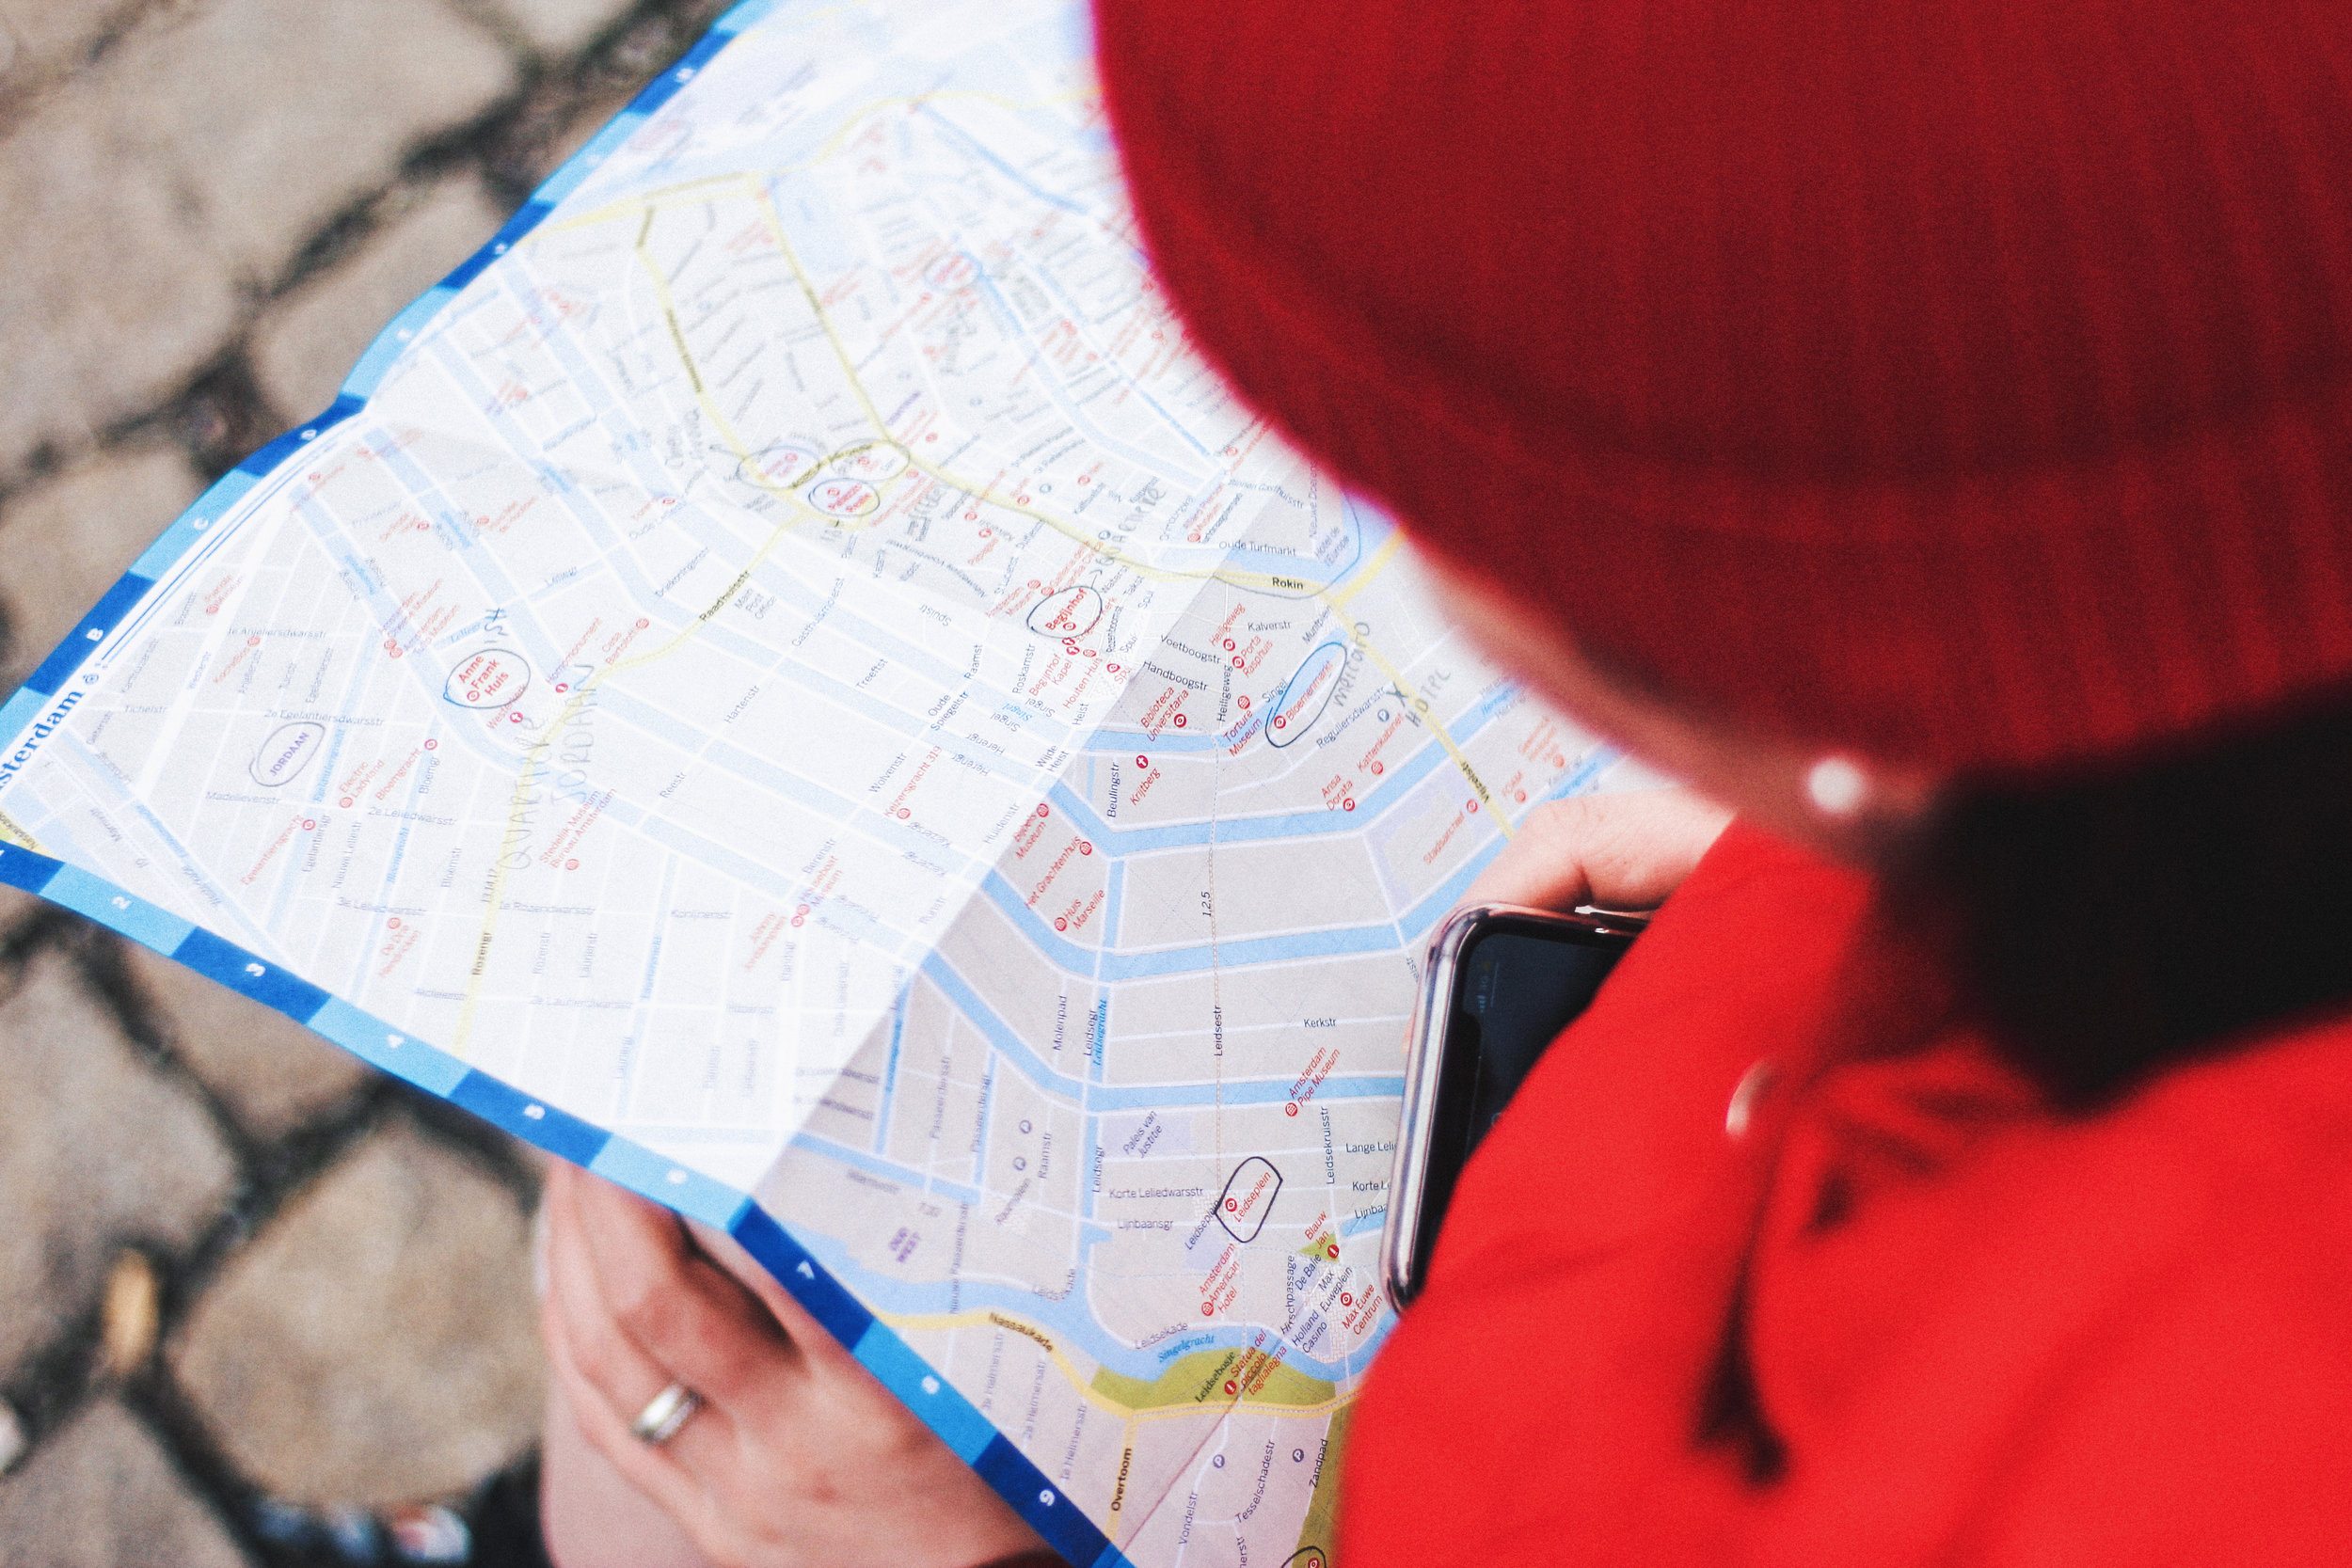 A woman looking at a street map